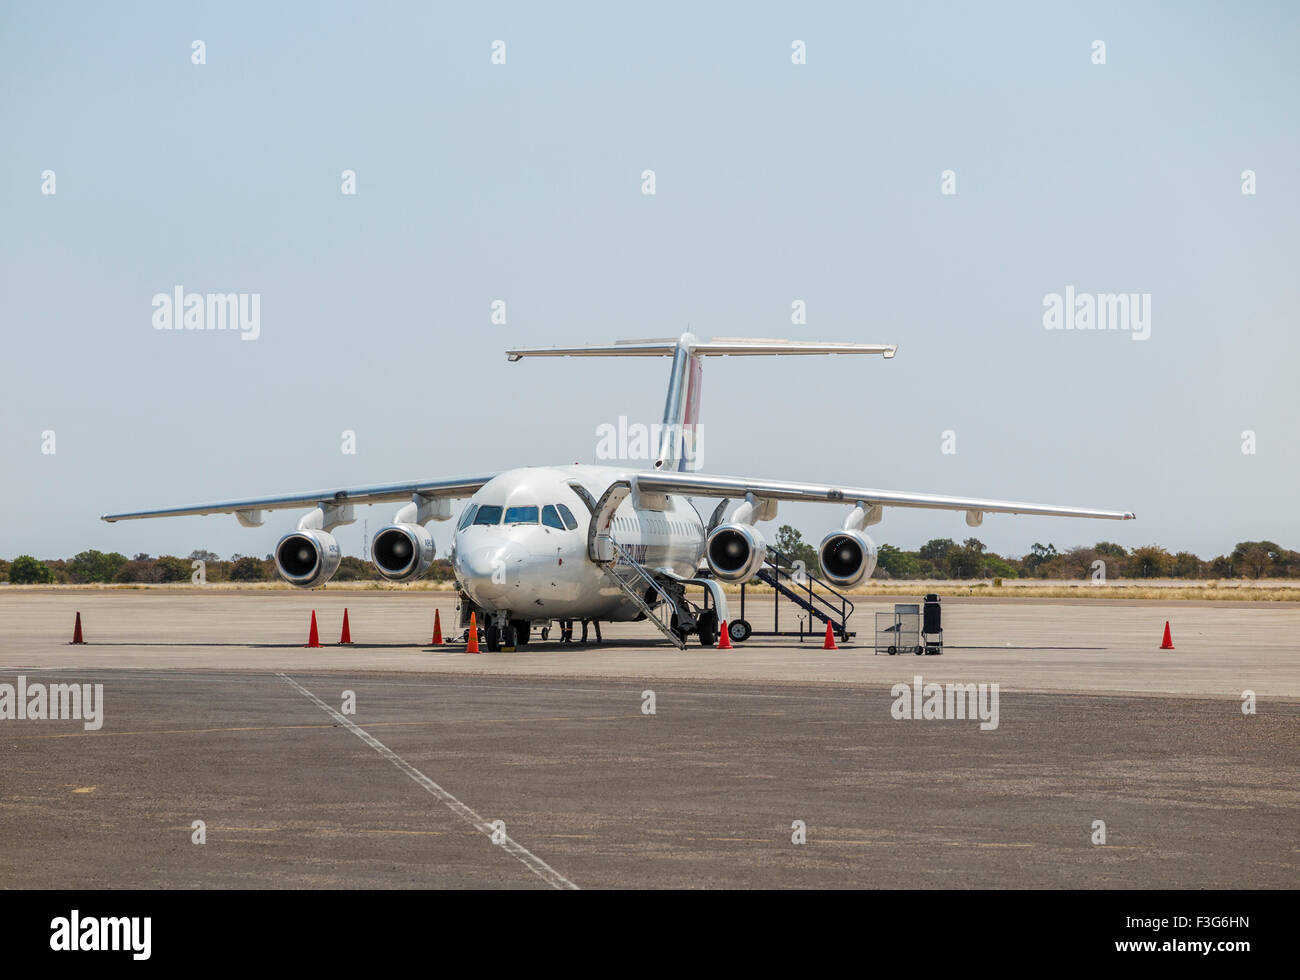 African passenger air travel to the Okavango Delta: Airlink Avro RJ85 at Maun Airport, Botswana, southern Africa - Stock Image